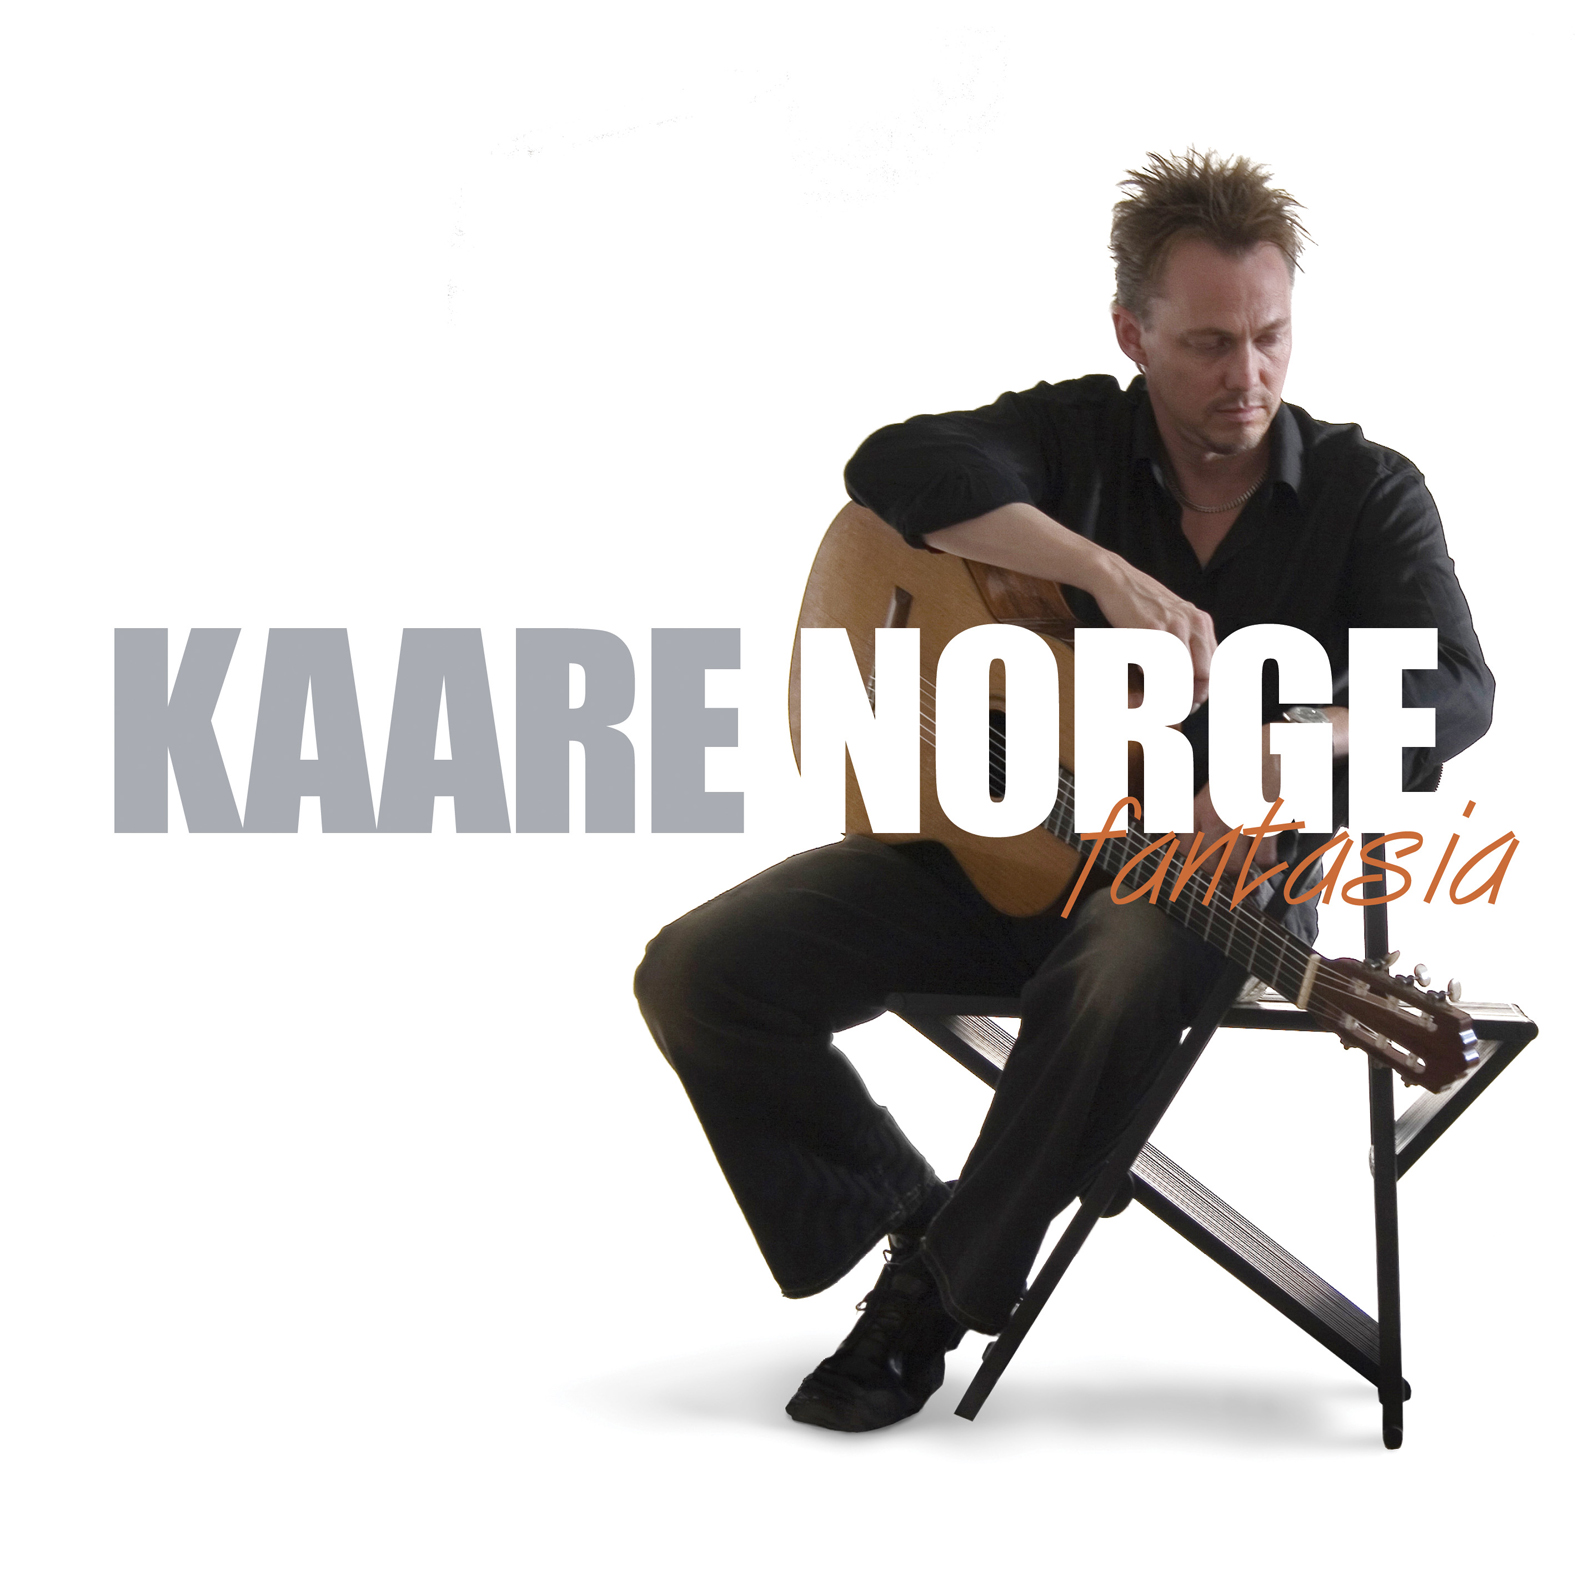 Caption: Kaare Norge, Credit: Kaare Norge